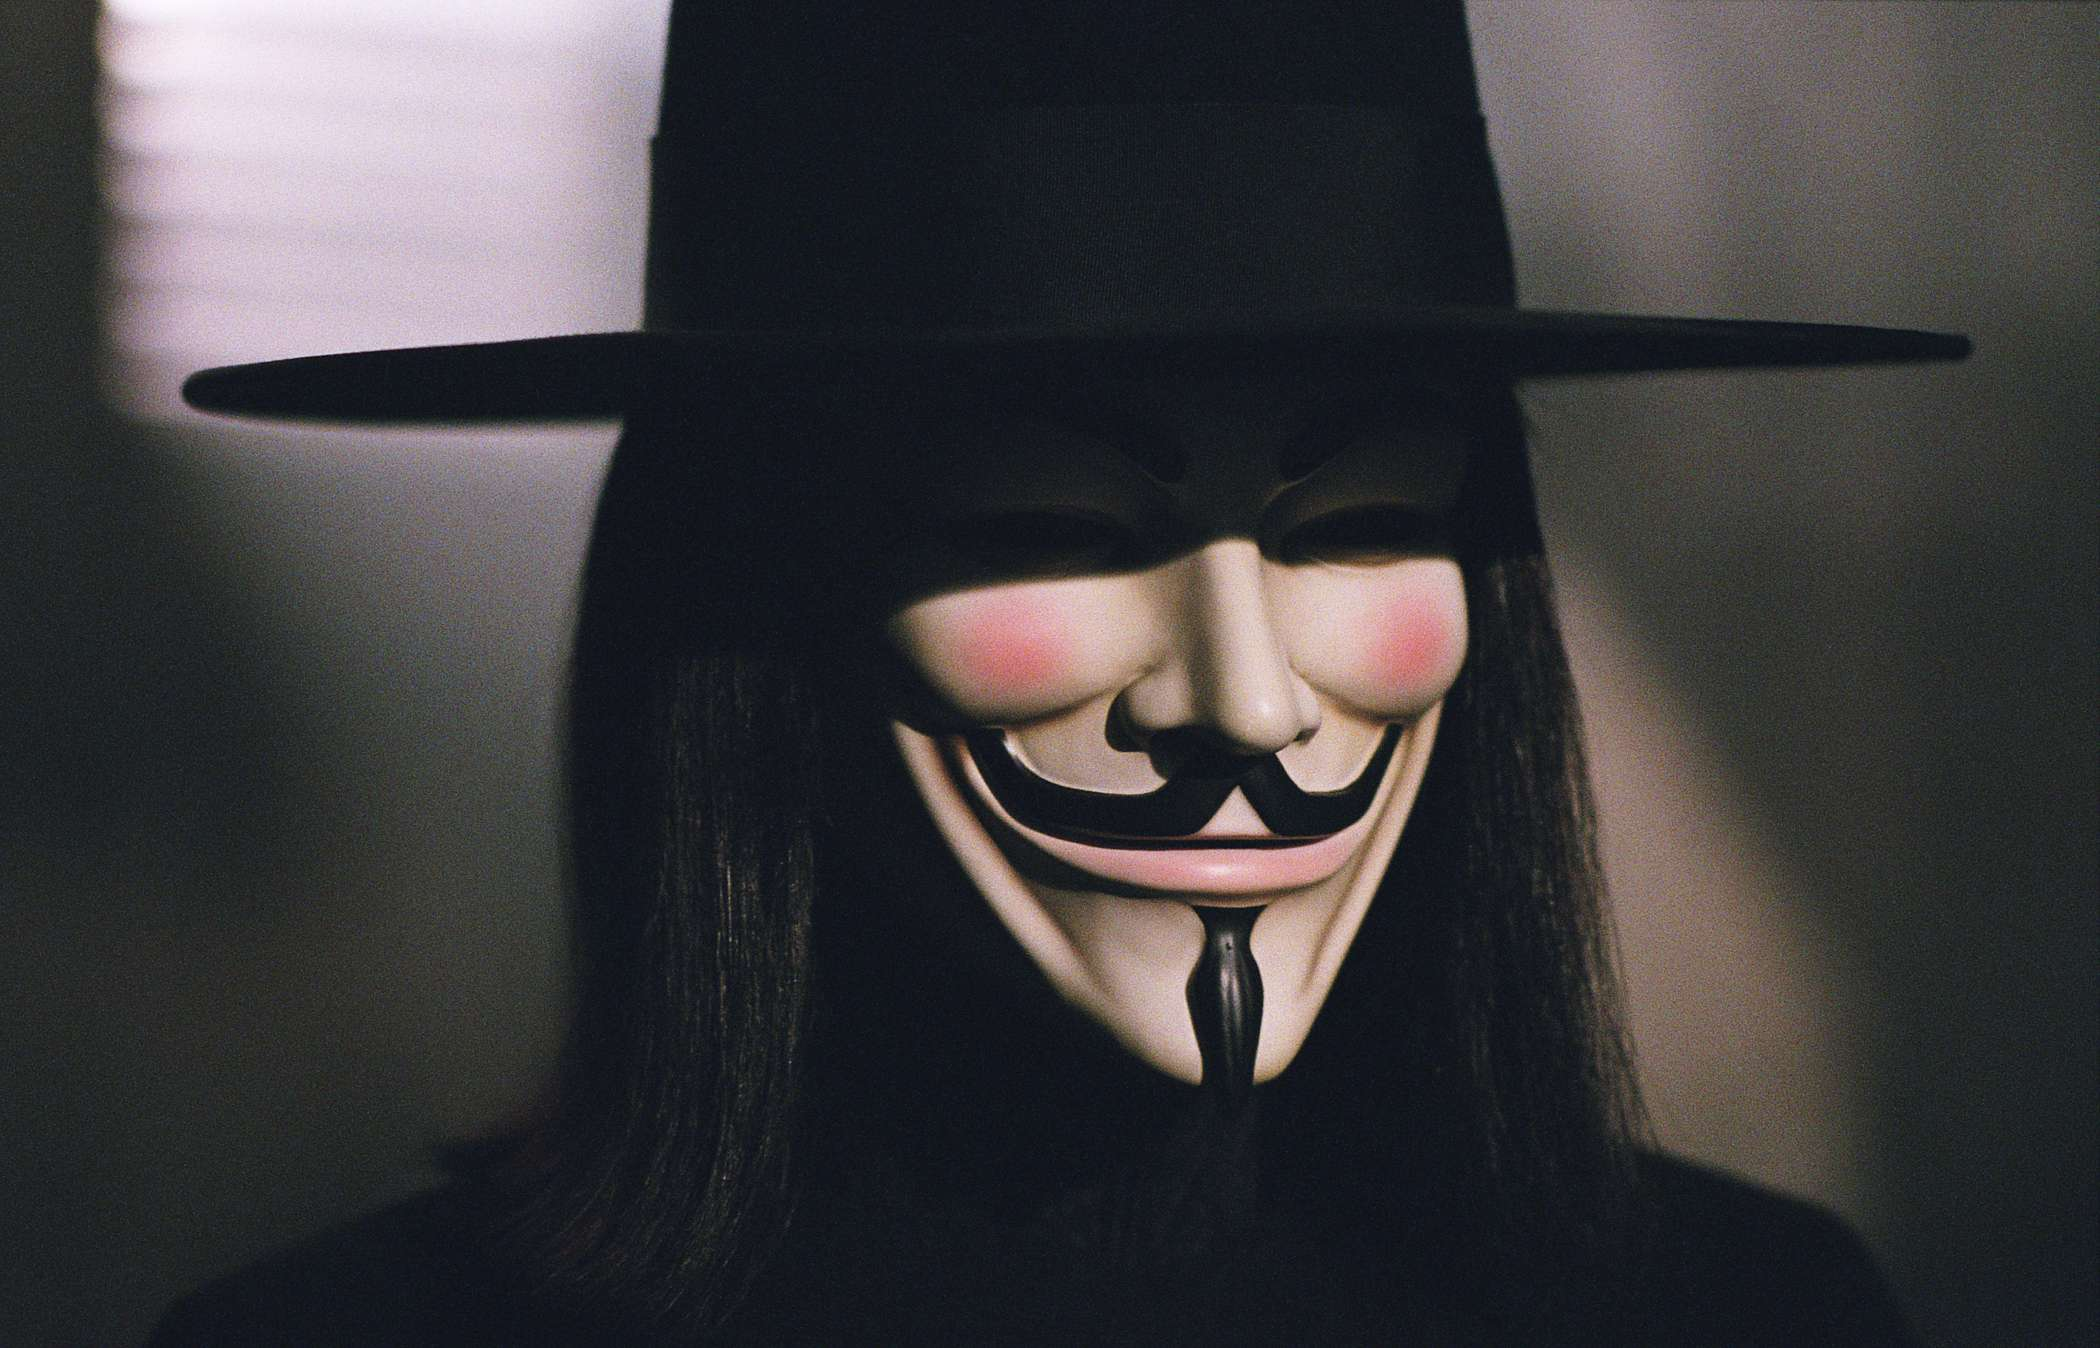 Reveal yourself: the trend of anonymous blogging